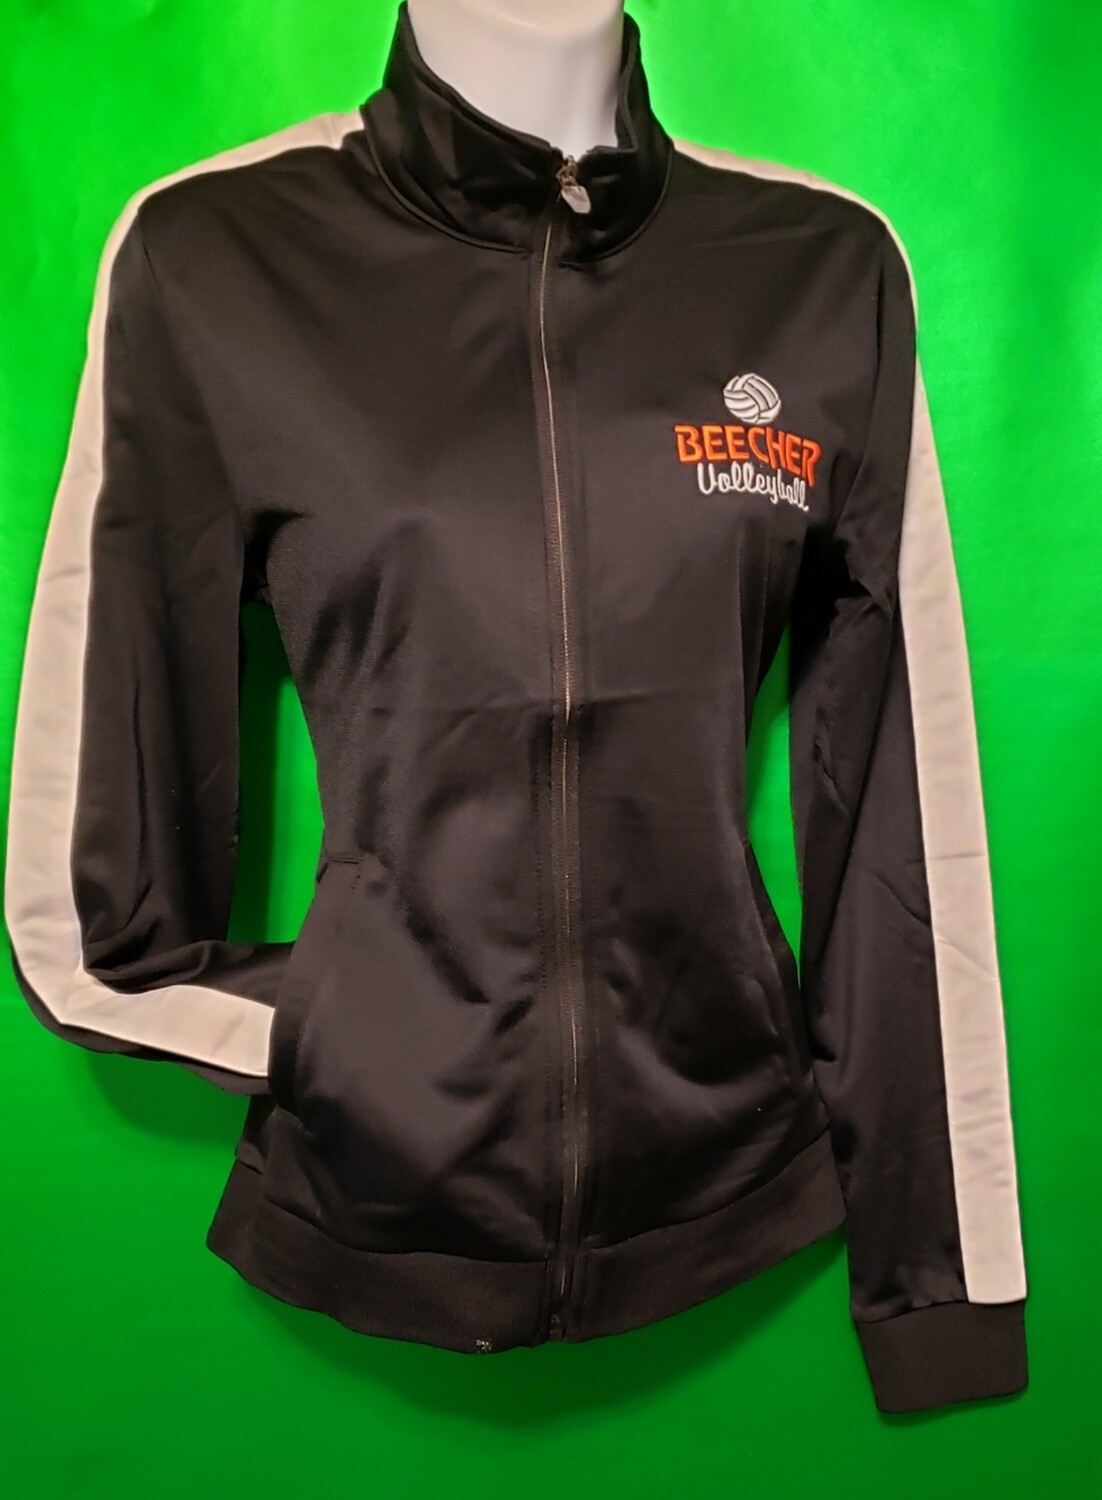 Volleyball warmup jacket